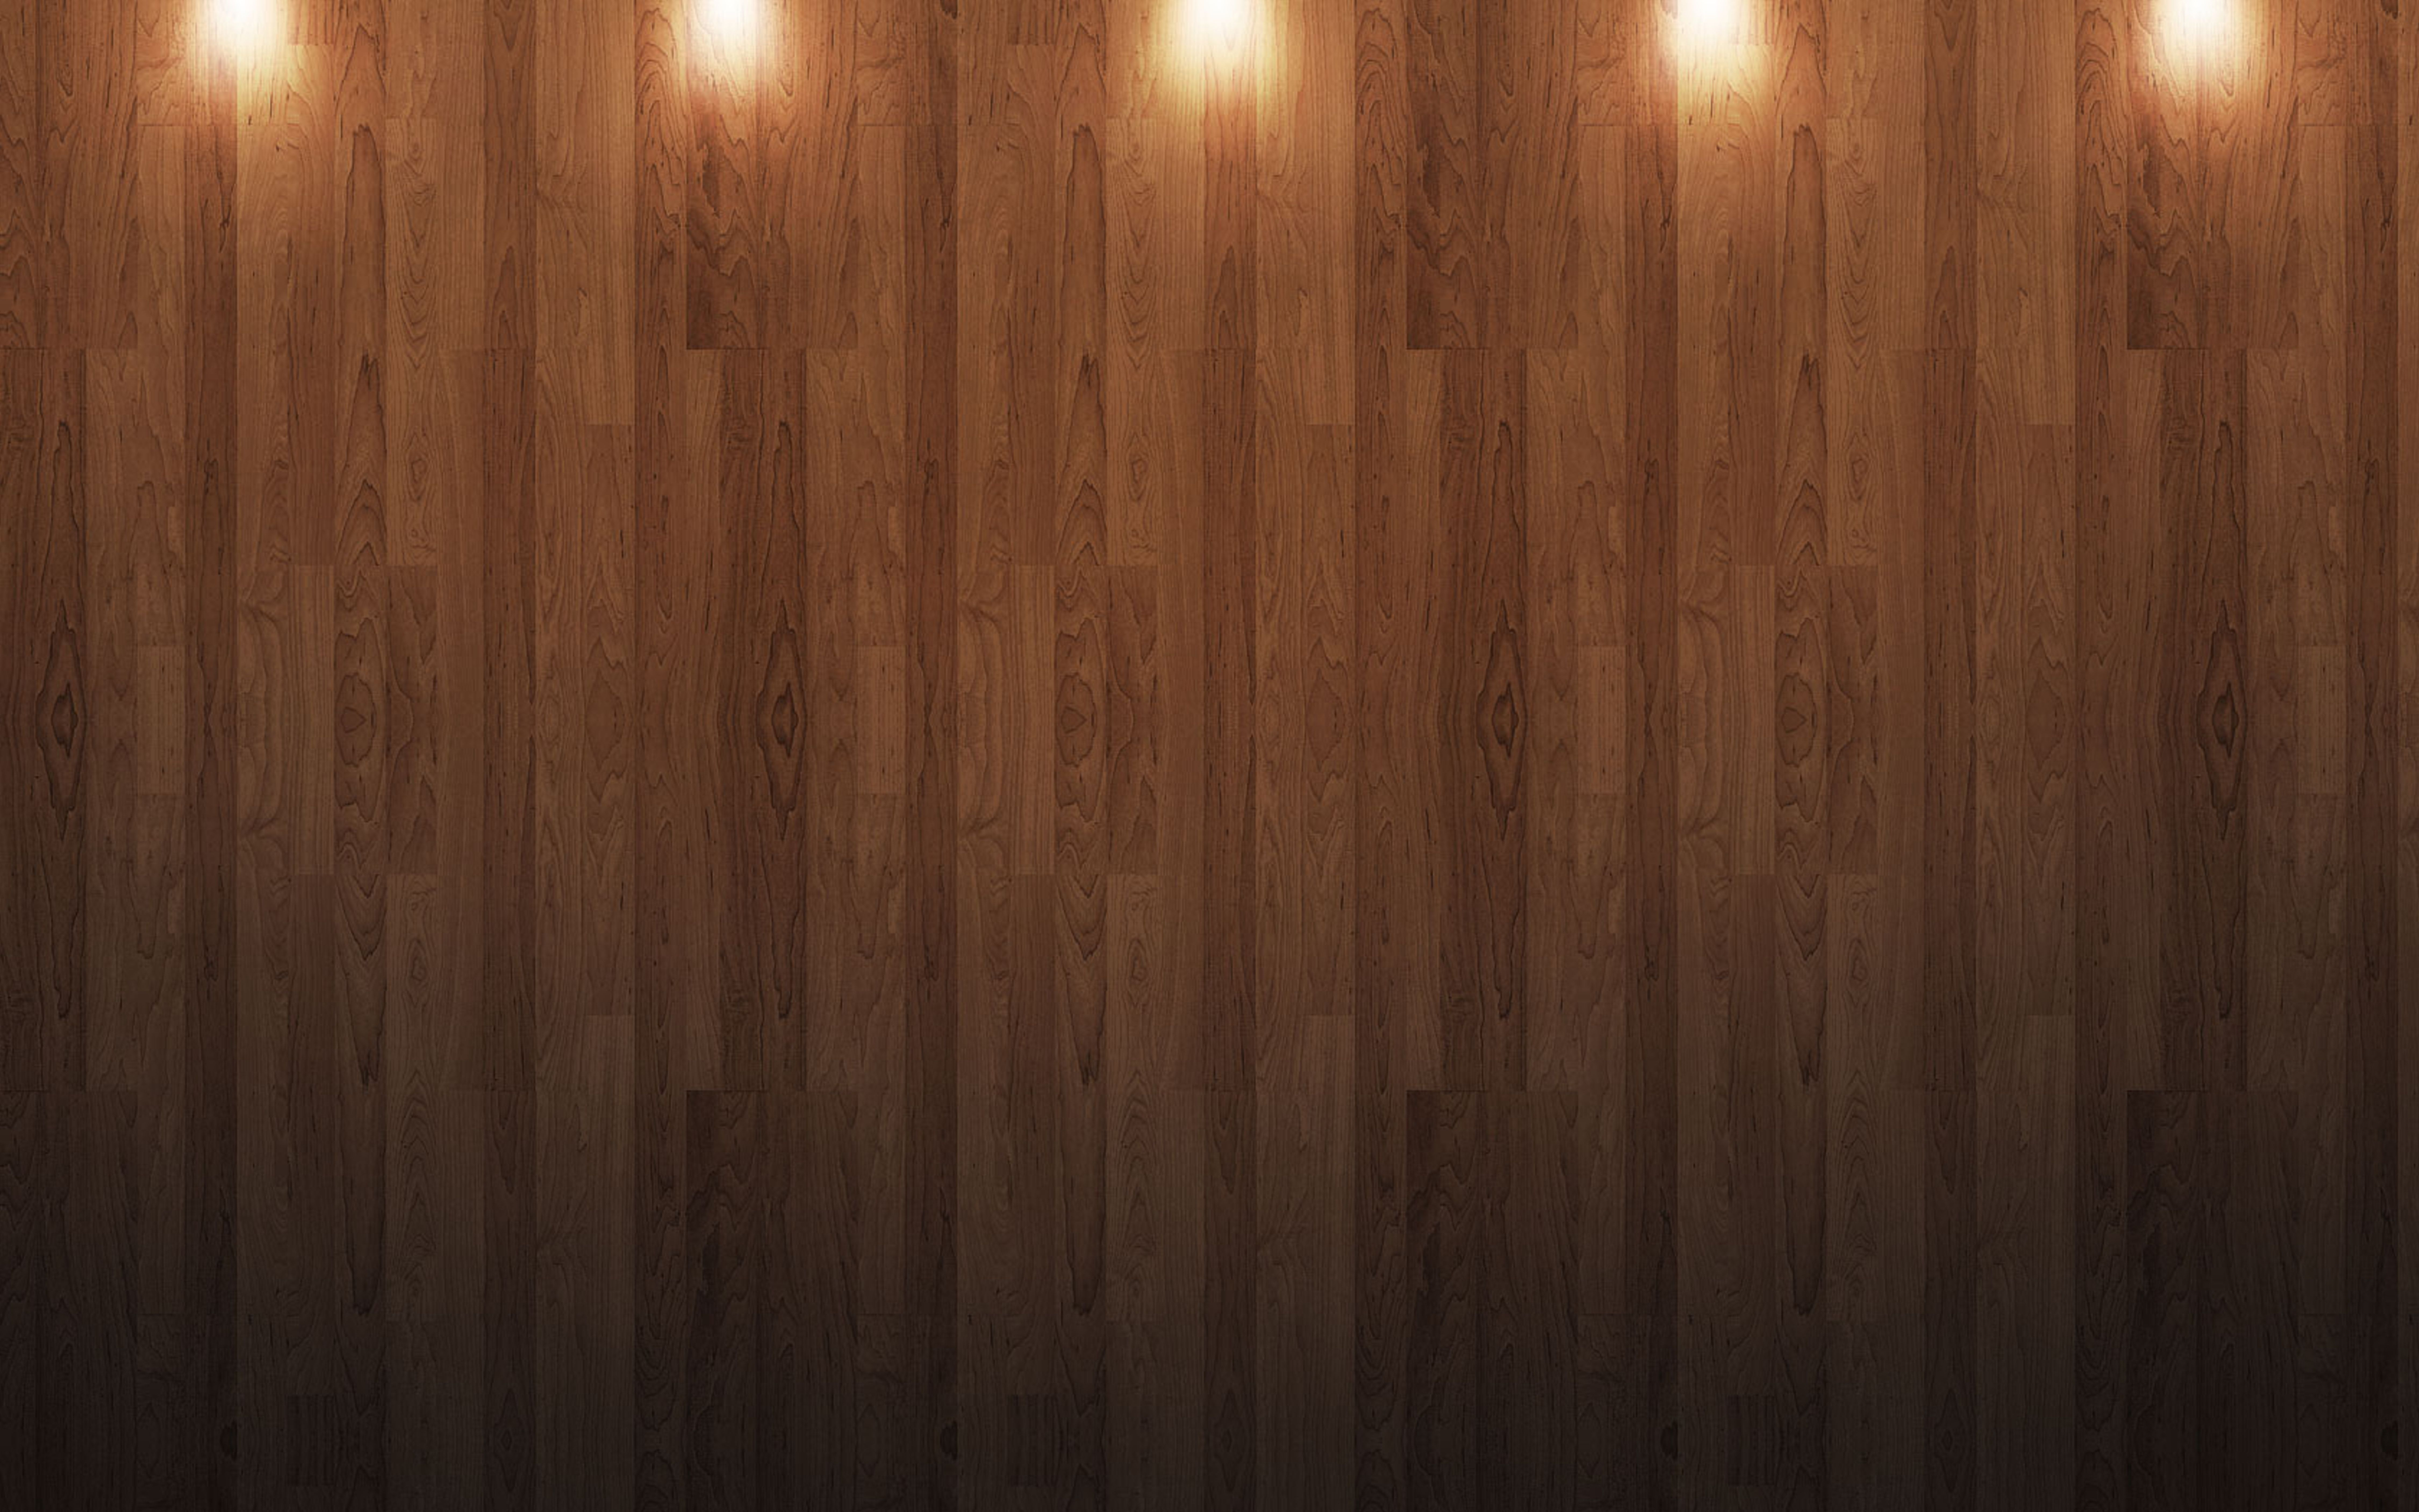 Holz wallpapers hintergr nde 9001x5626 id 371656 for Holz wallpaper